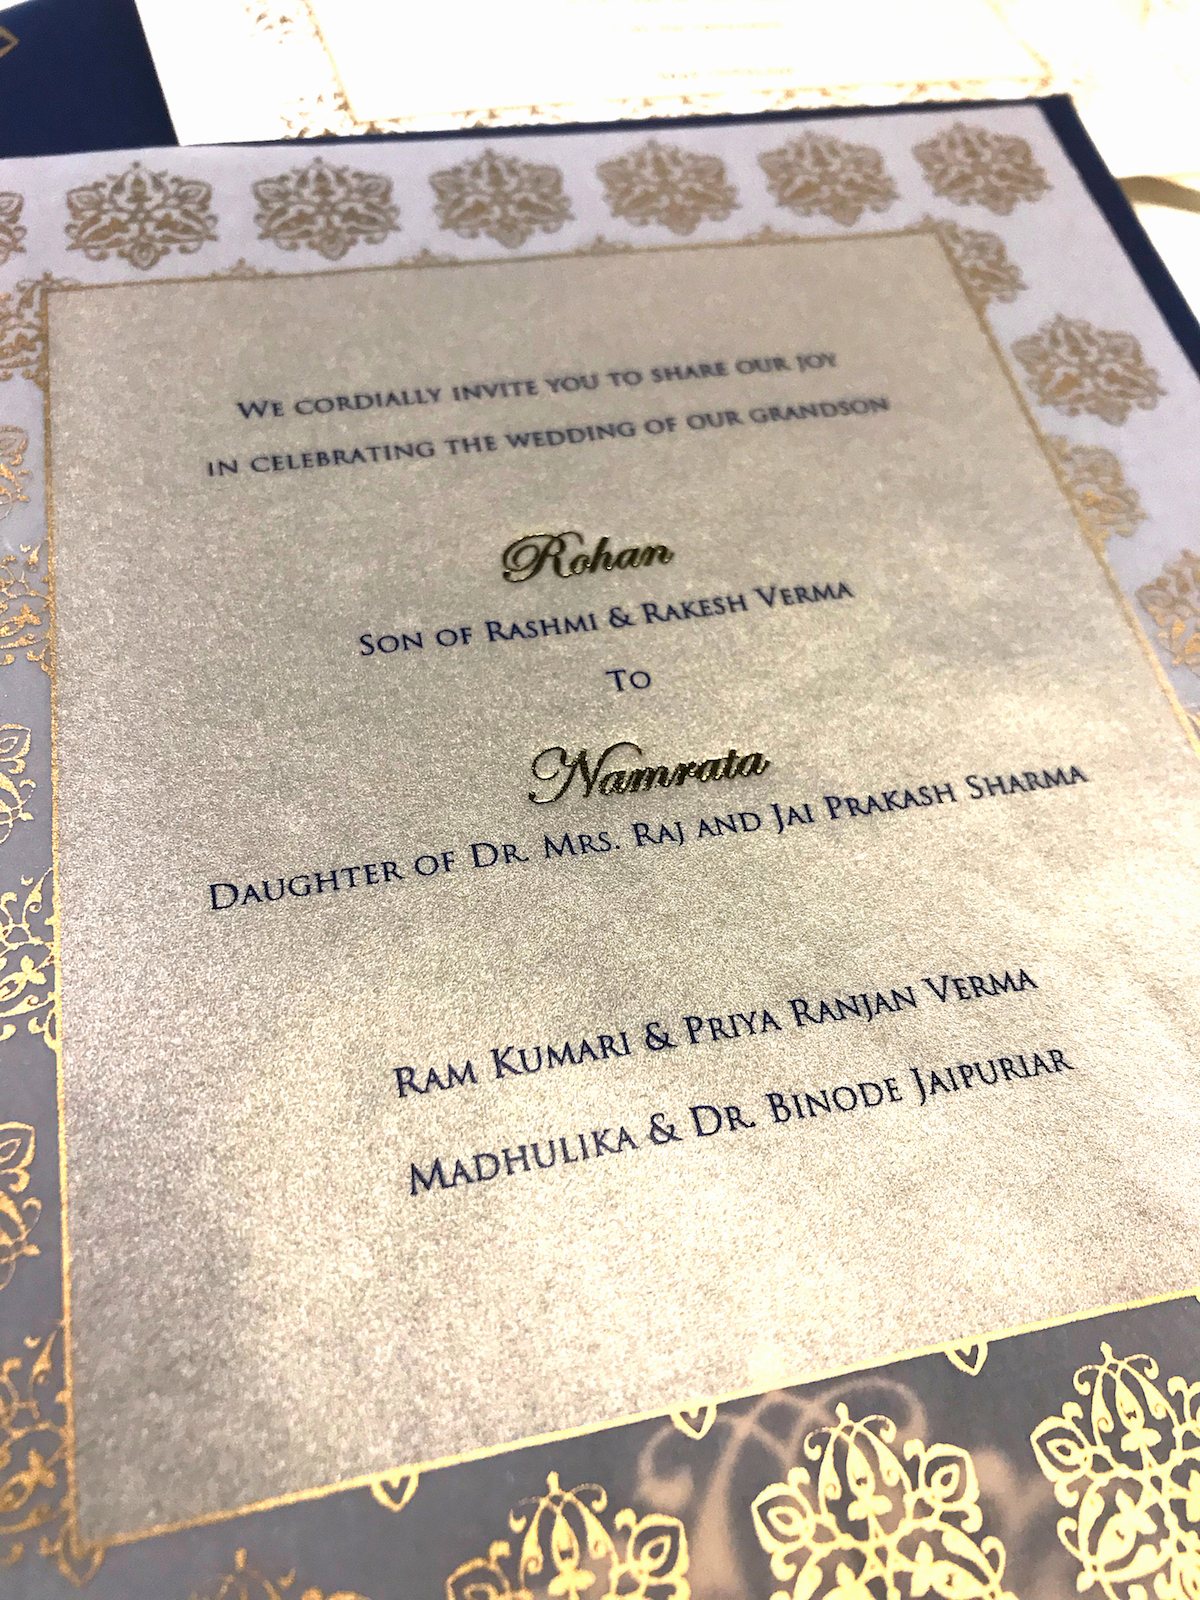 Indian Wedding Invitation Wording Luxury Indian Wedding Invitation Wording In English What to Say